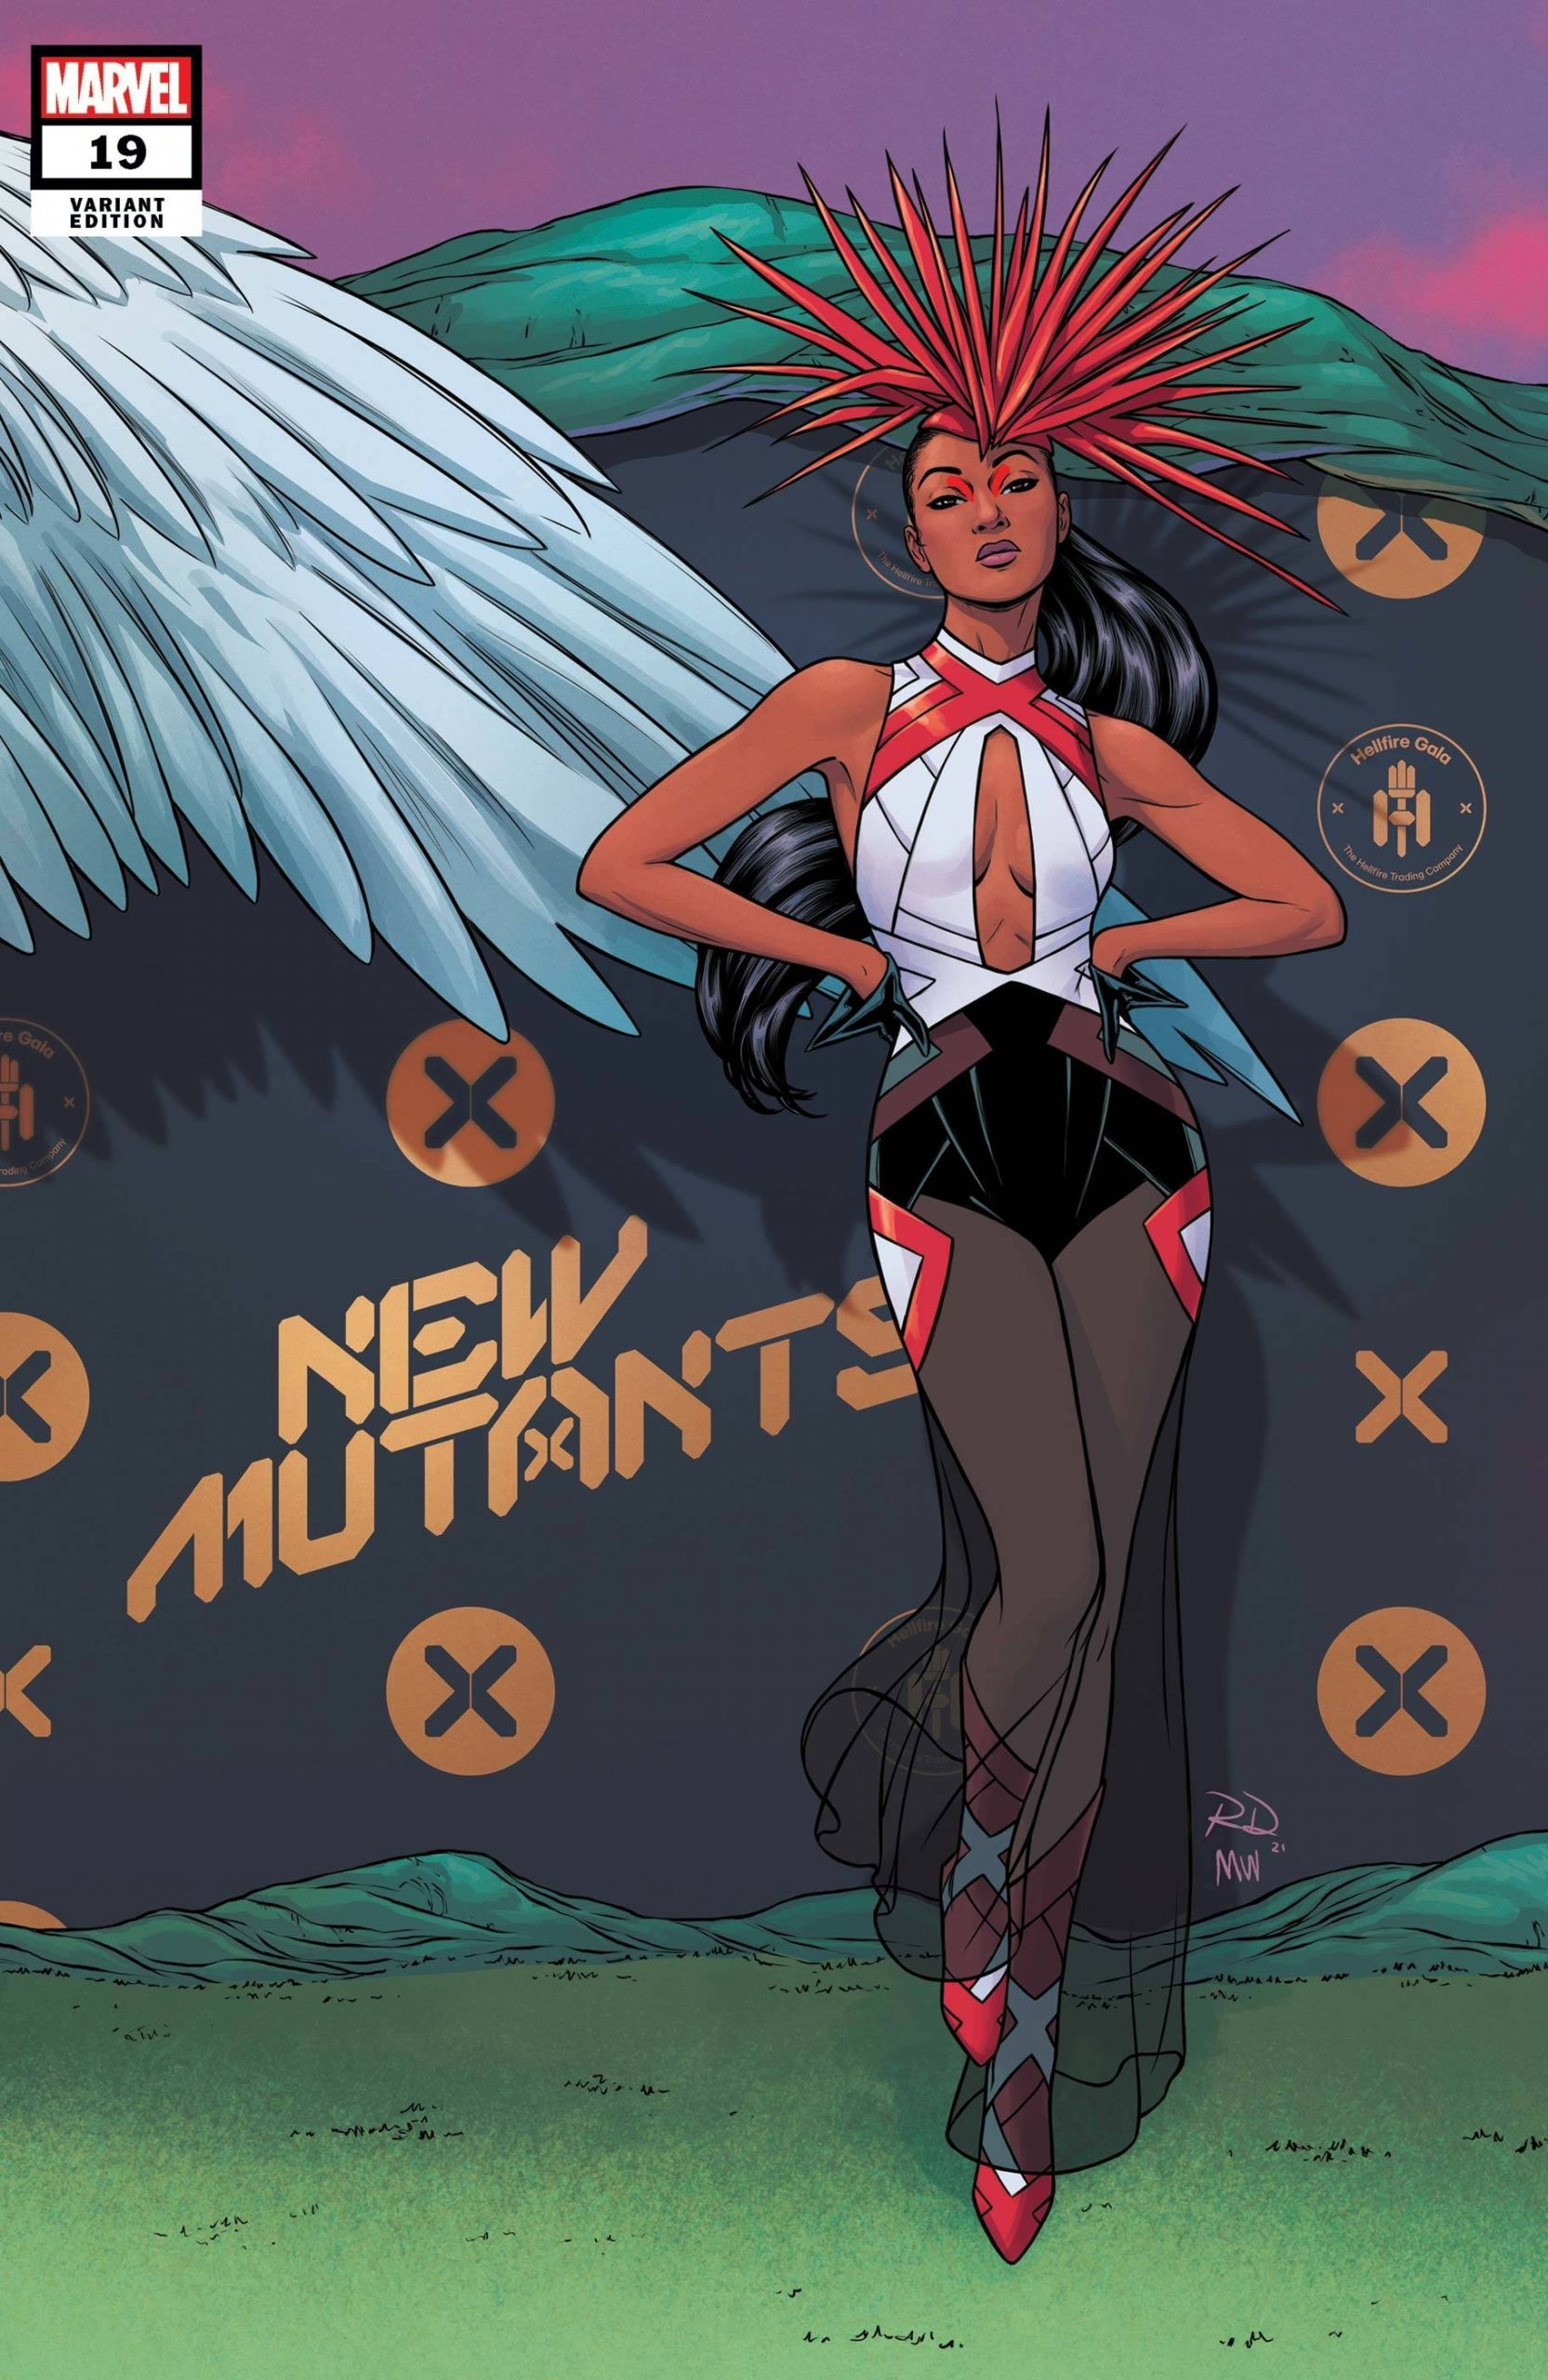 New-Mutants-19-spoilers-0-1-scaled-1 New-Mutants-19-spoilers-0-1-scaled-1